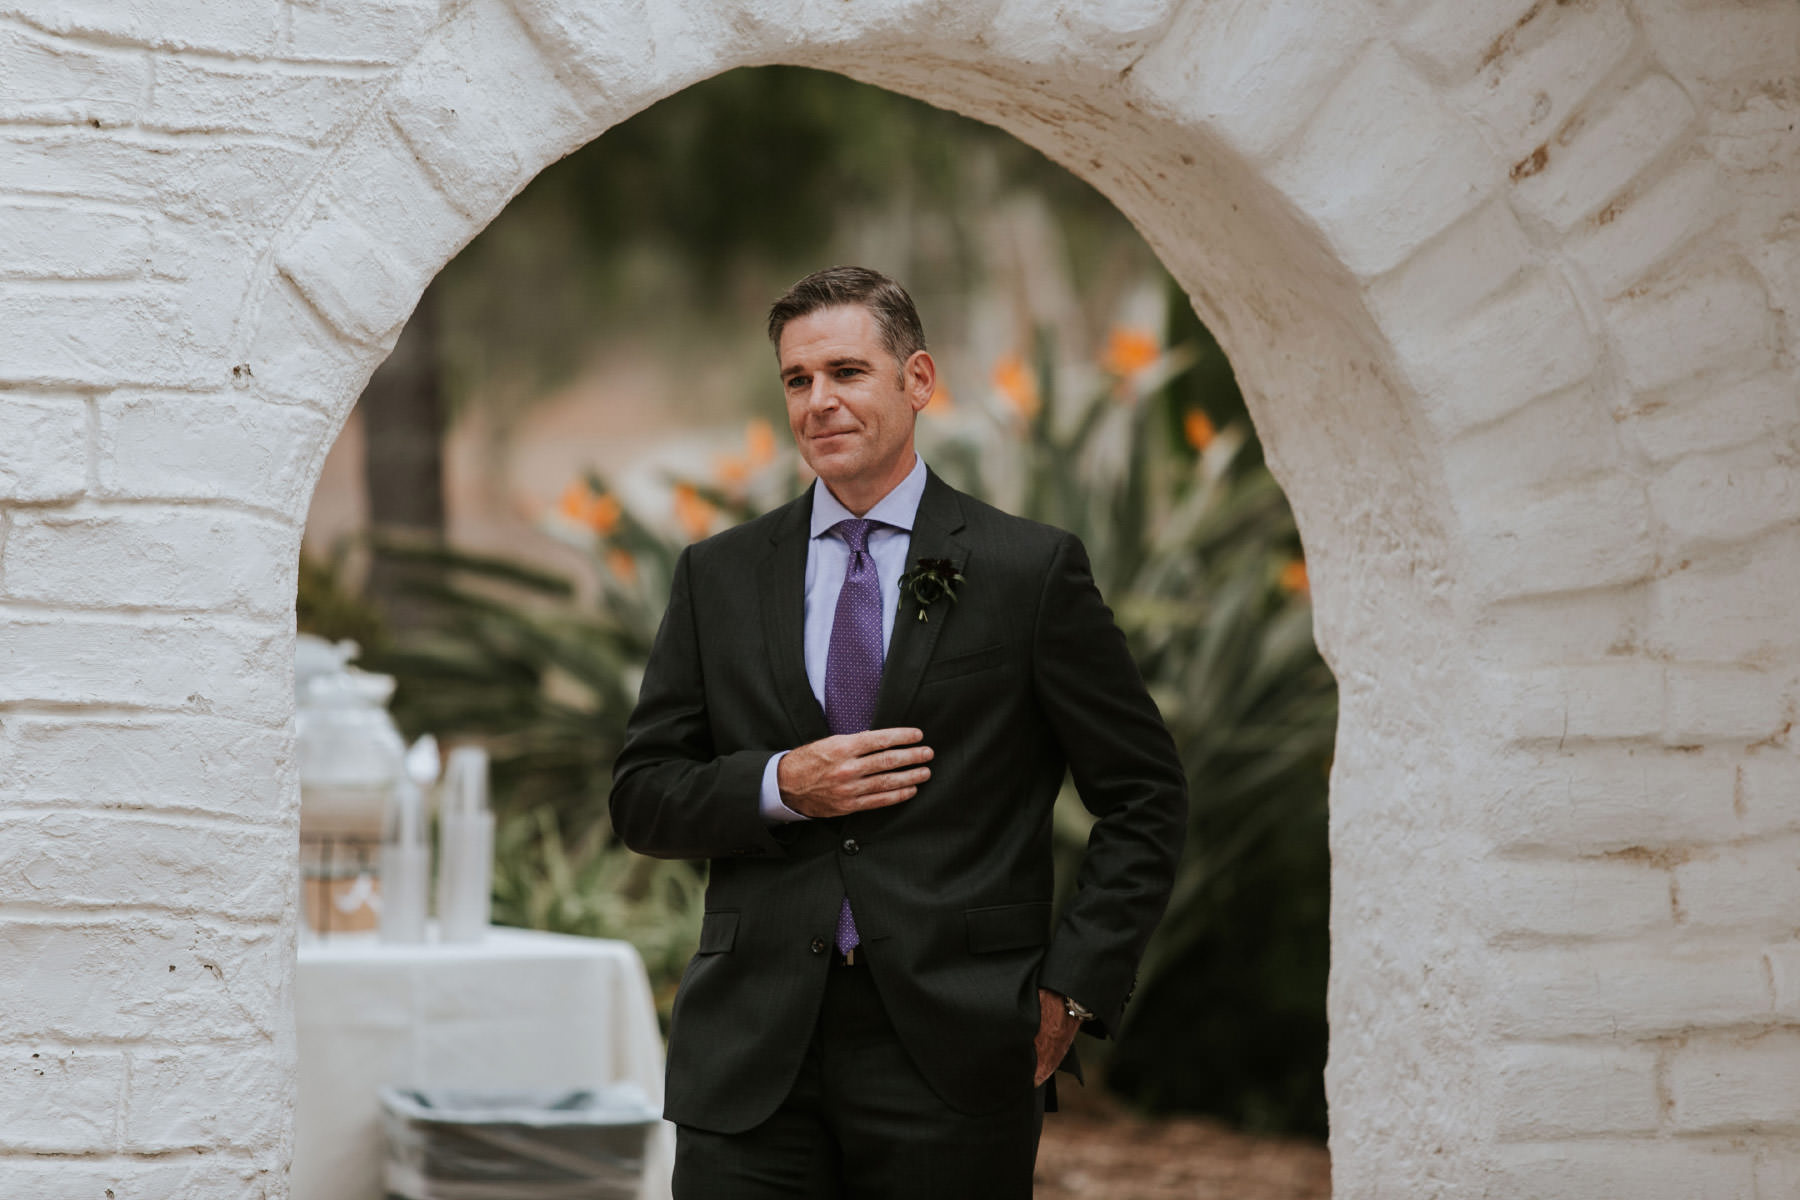 Groom walking through archway at Leo Carrillo Ranch wedding